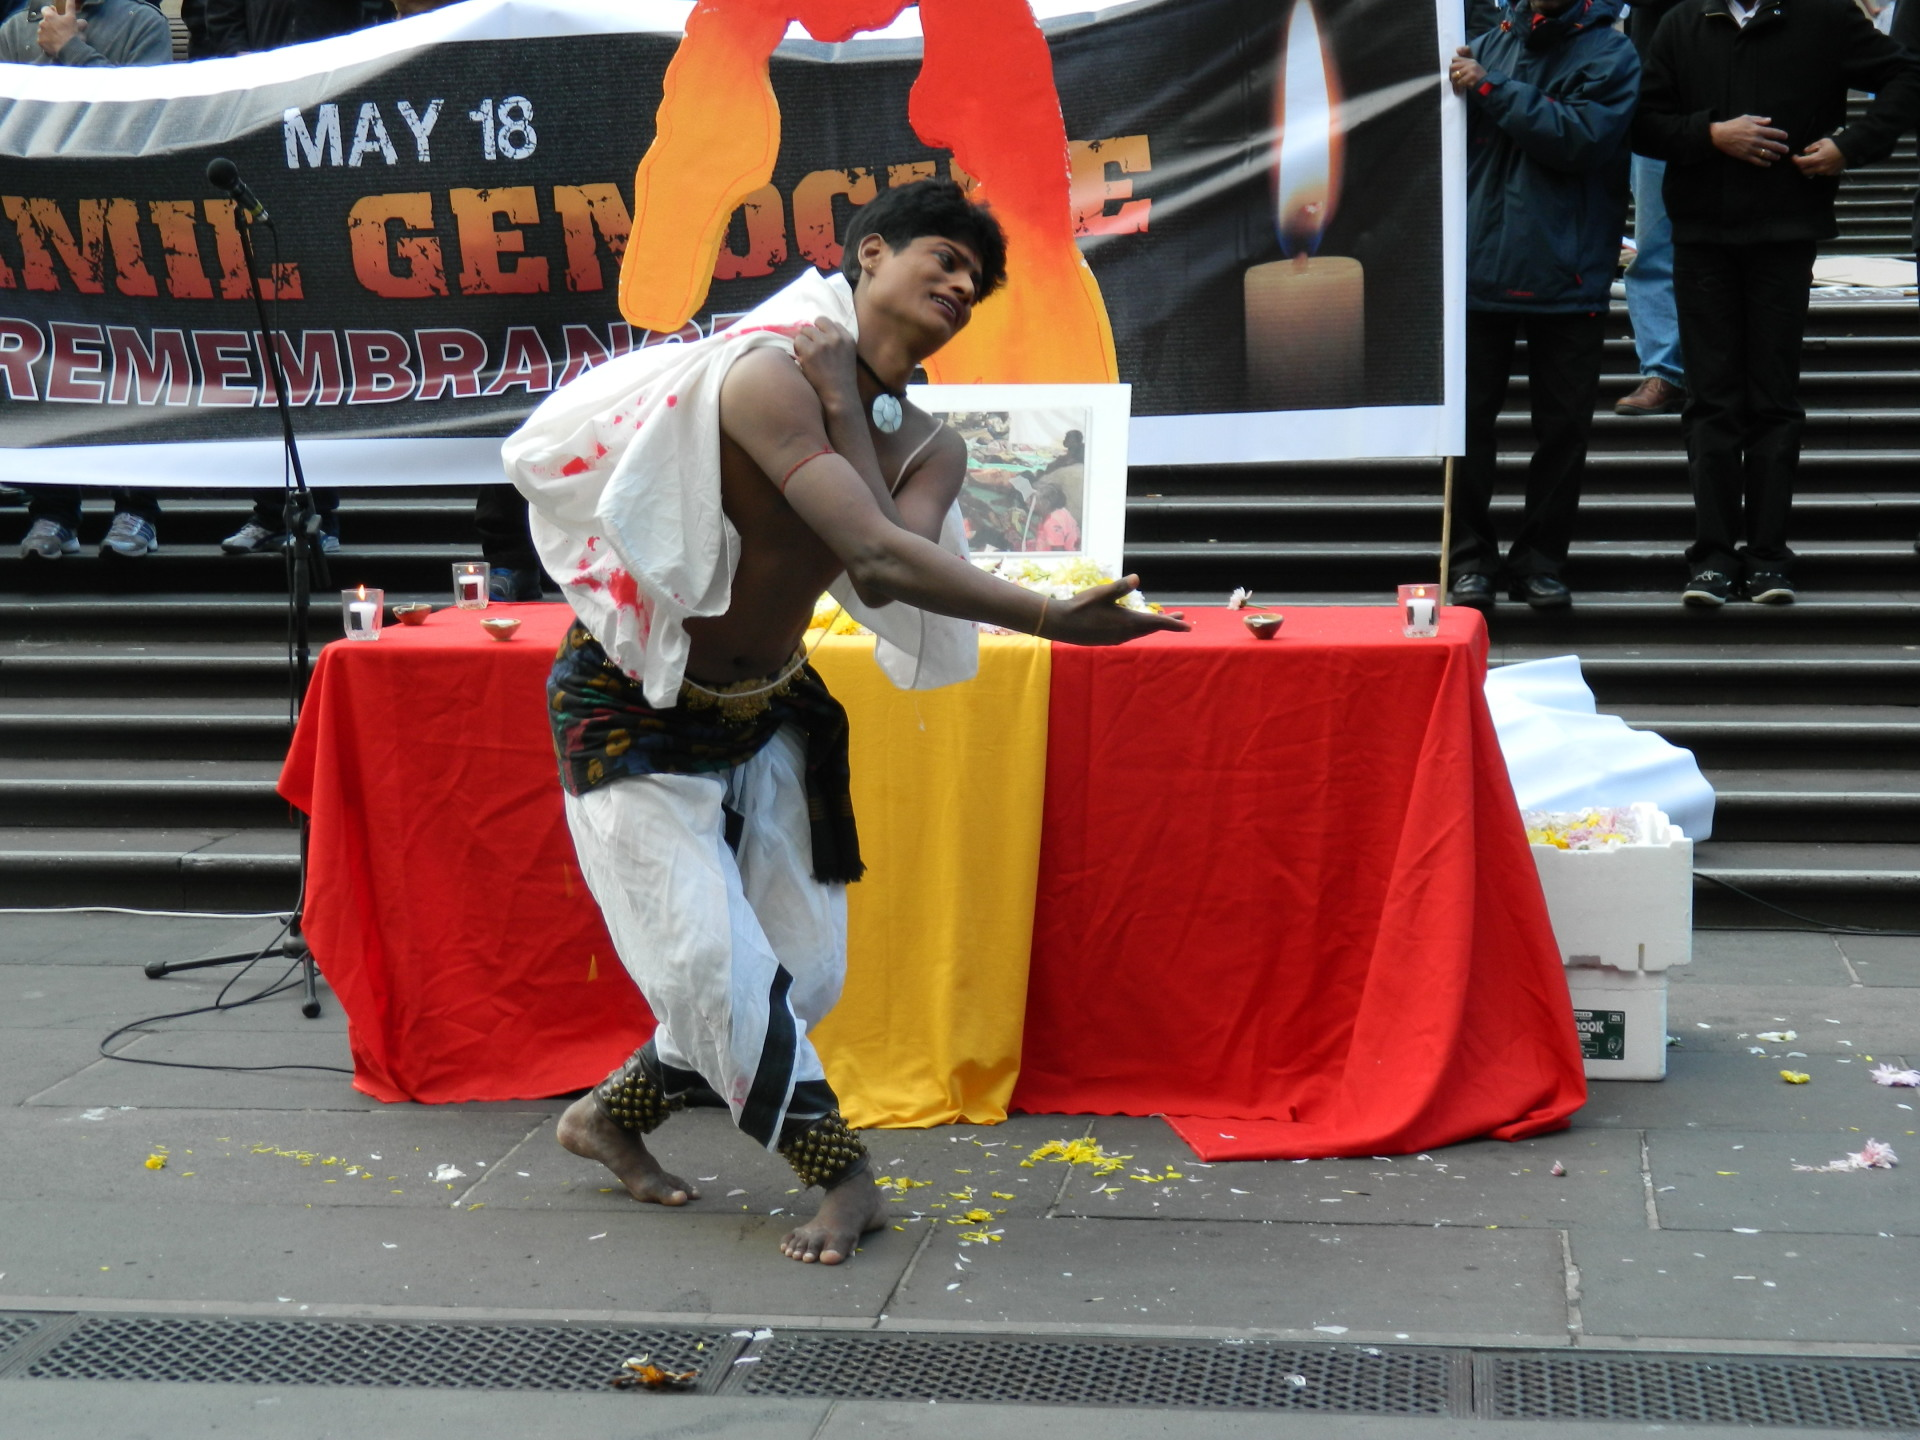 Tamil Genocide Remembrance Day in Melbourne